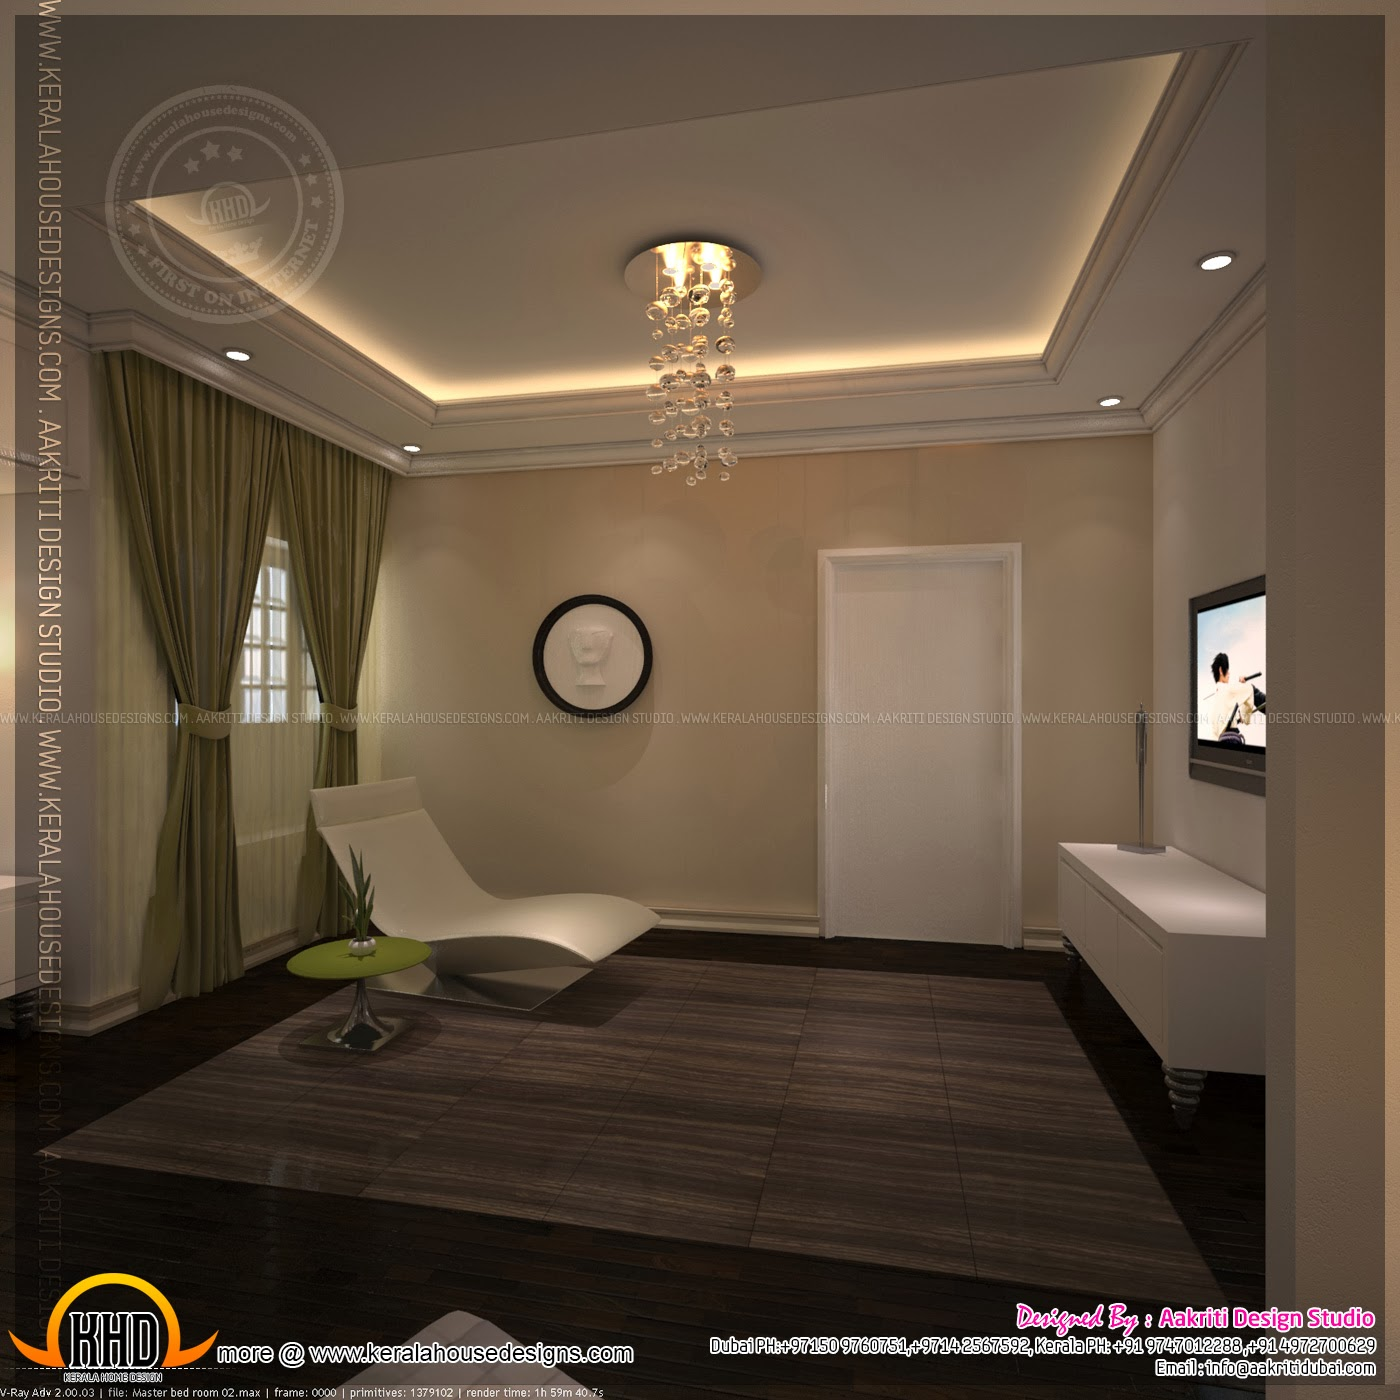 Master bedroom and bathroom interior design